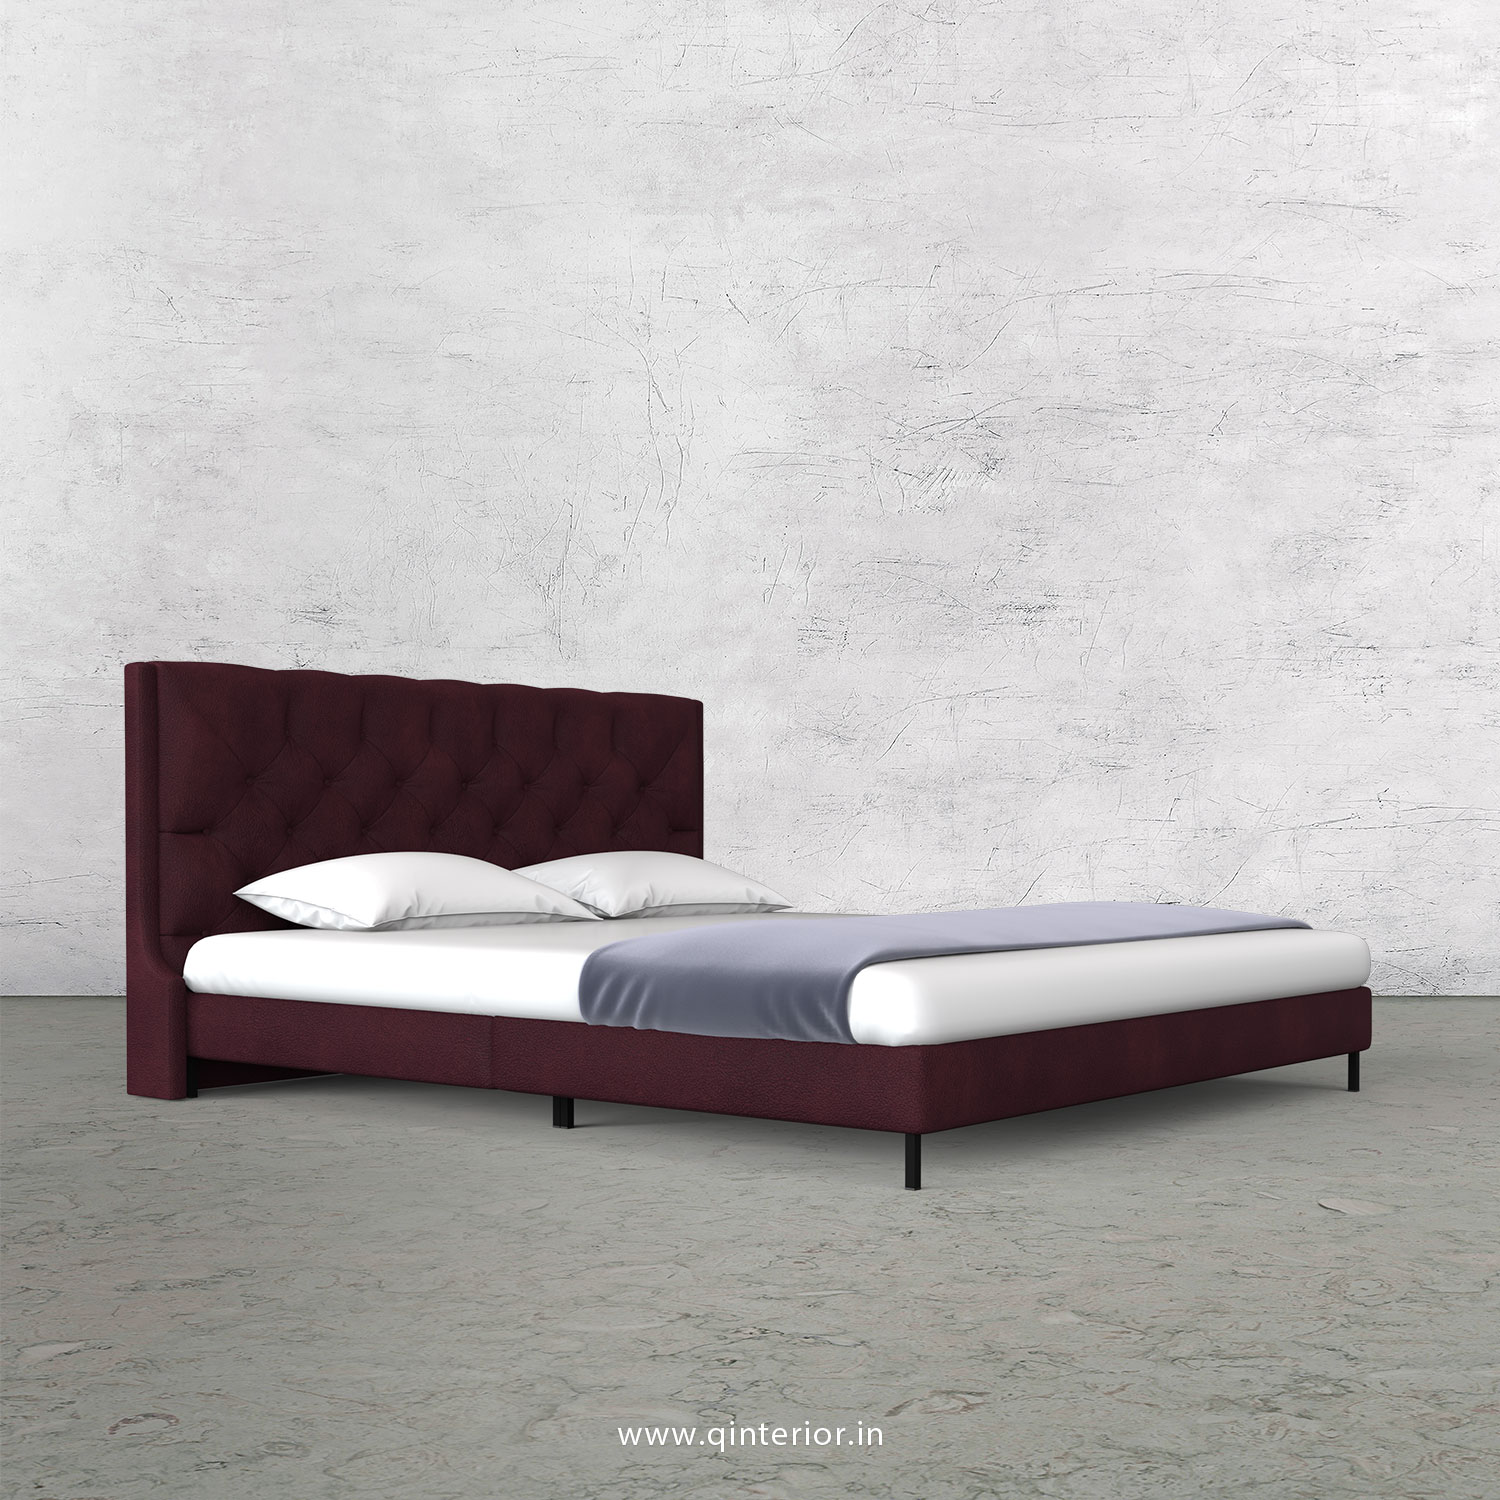 Scorpius King Size Bed in Fab Leather Fabric - KBD003 FL12